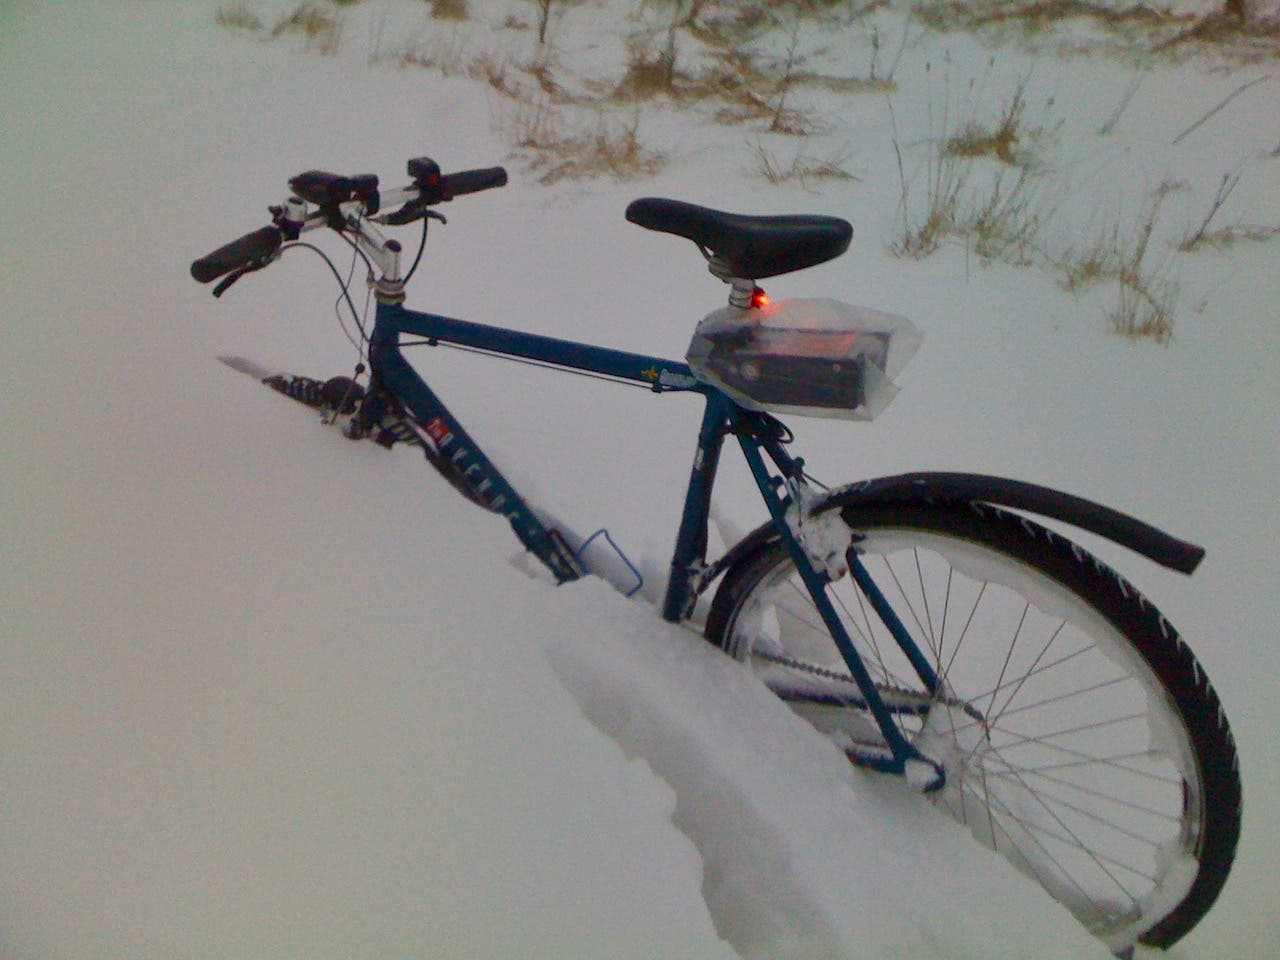 electric bike in snow